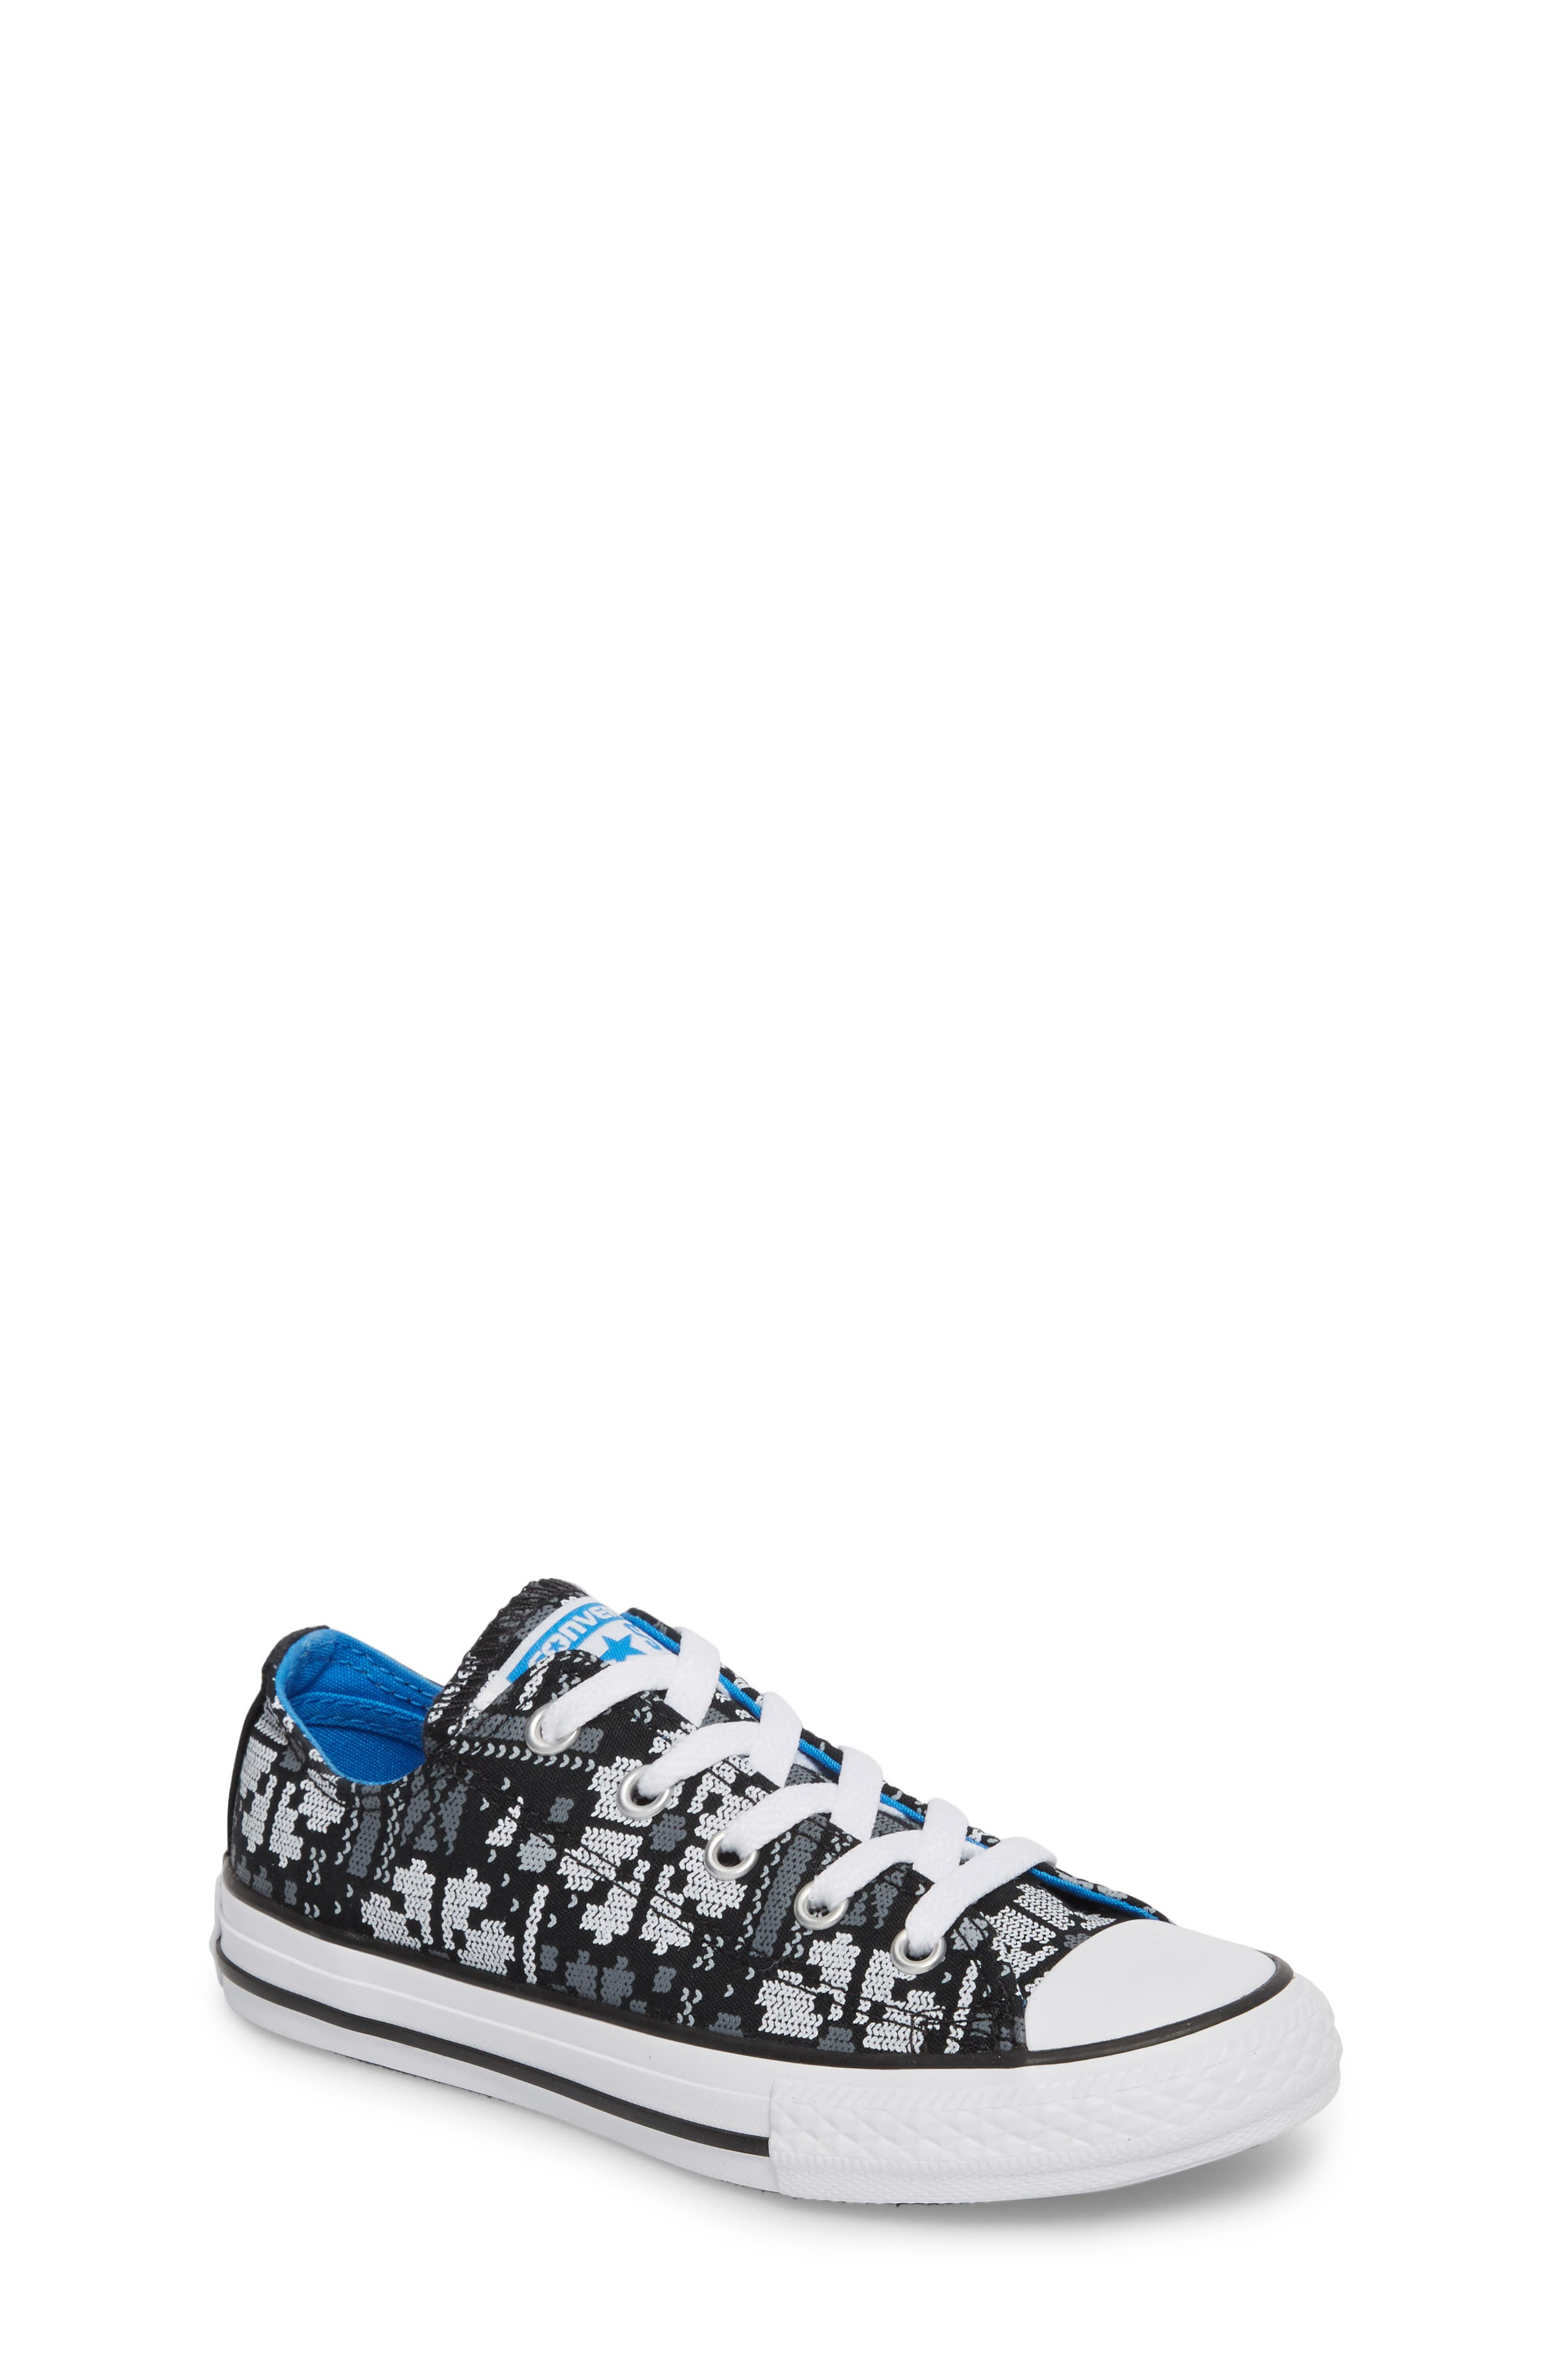 Chuck Taylor<sup>®</sup> All Star<sup>®</sup> Winter Ox Sneaker,                         Main,                         color, Black Canvas